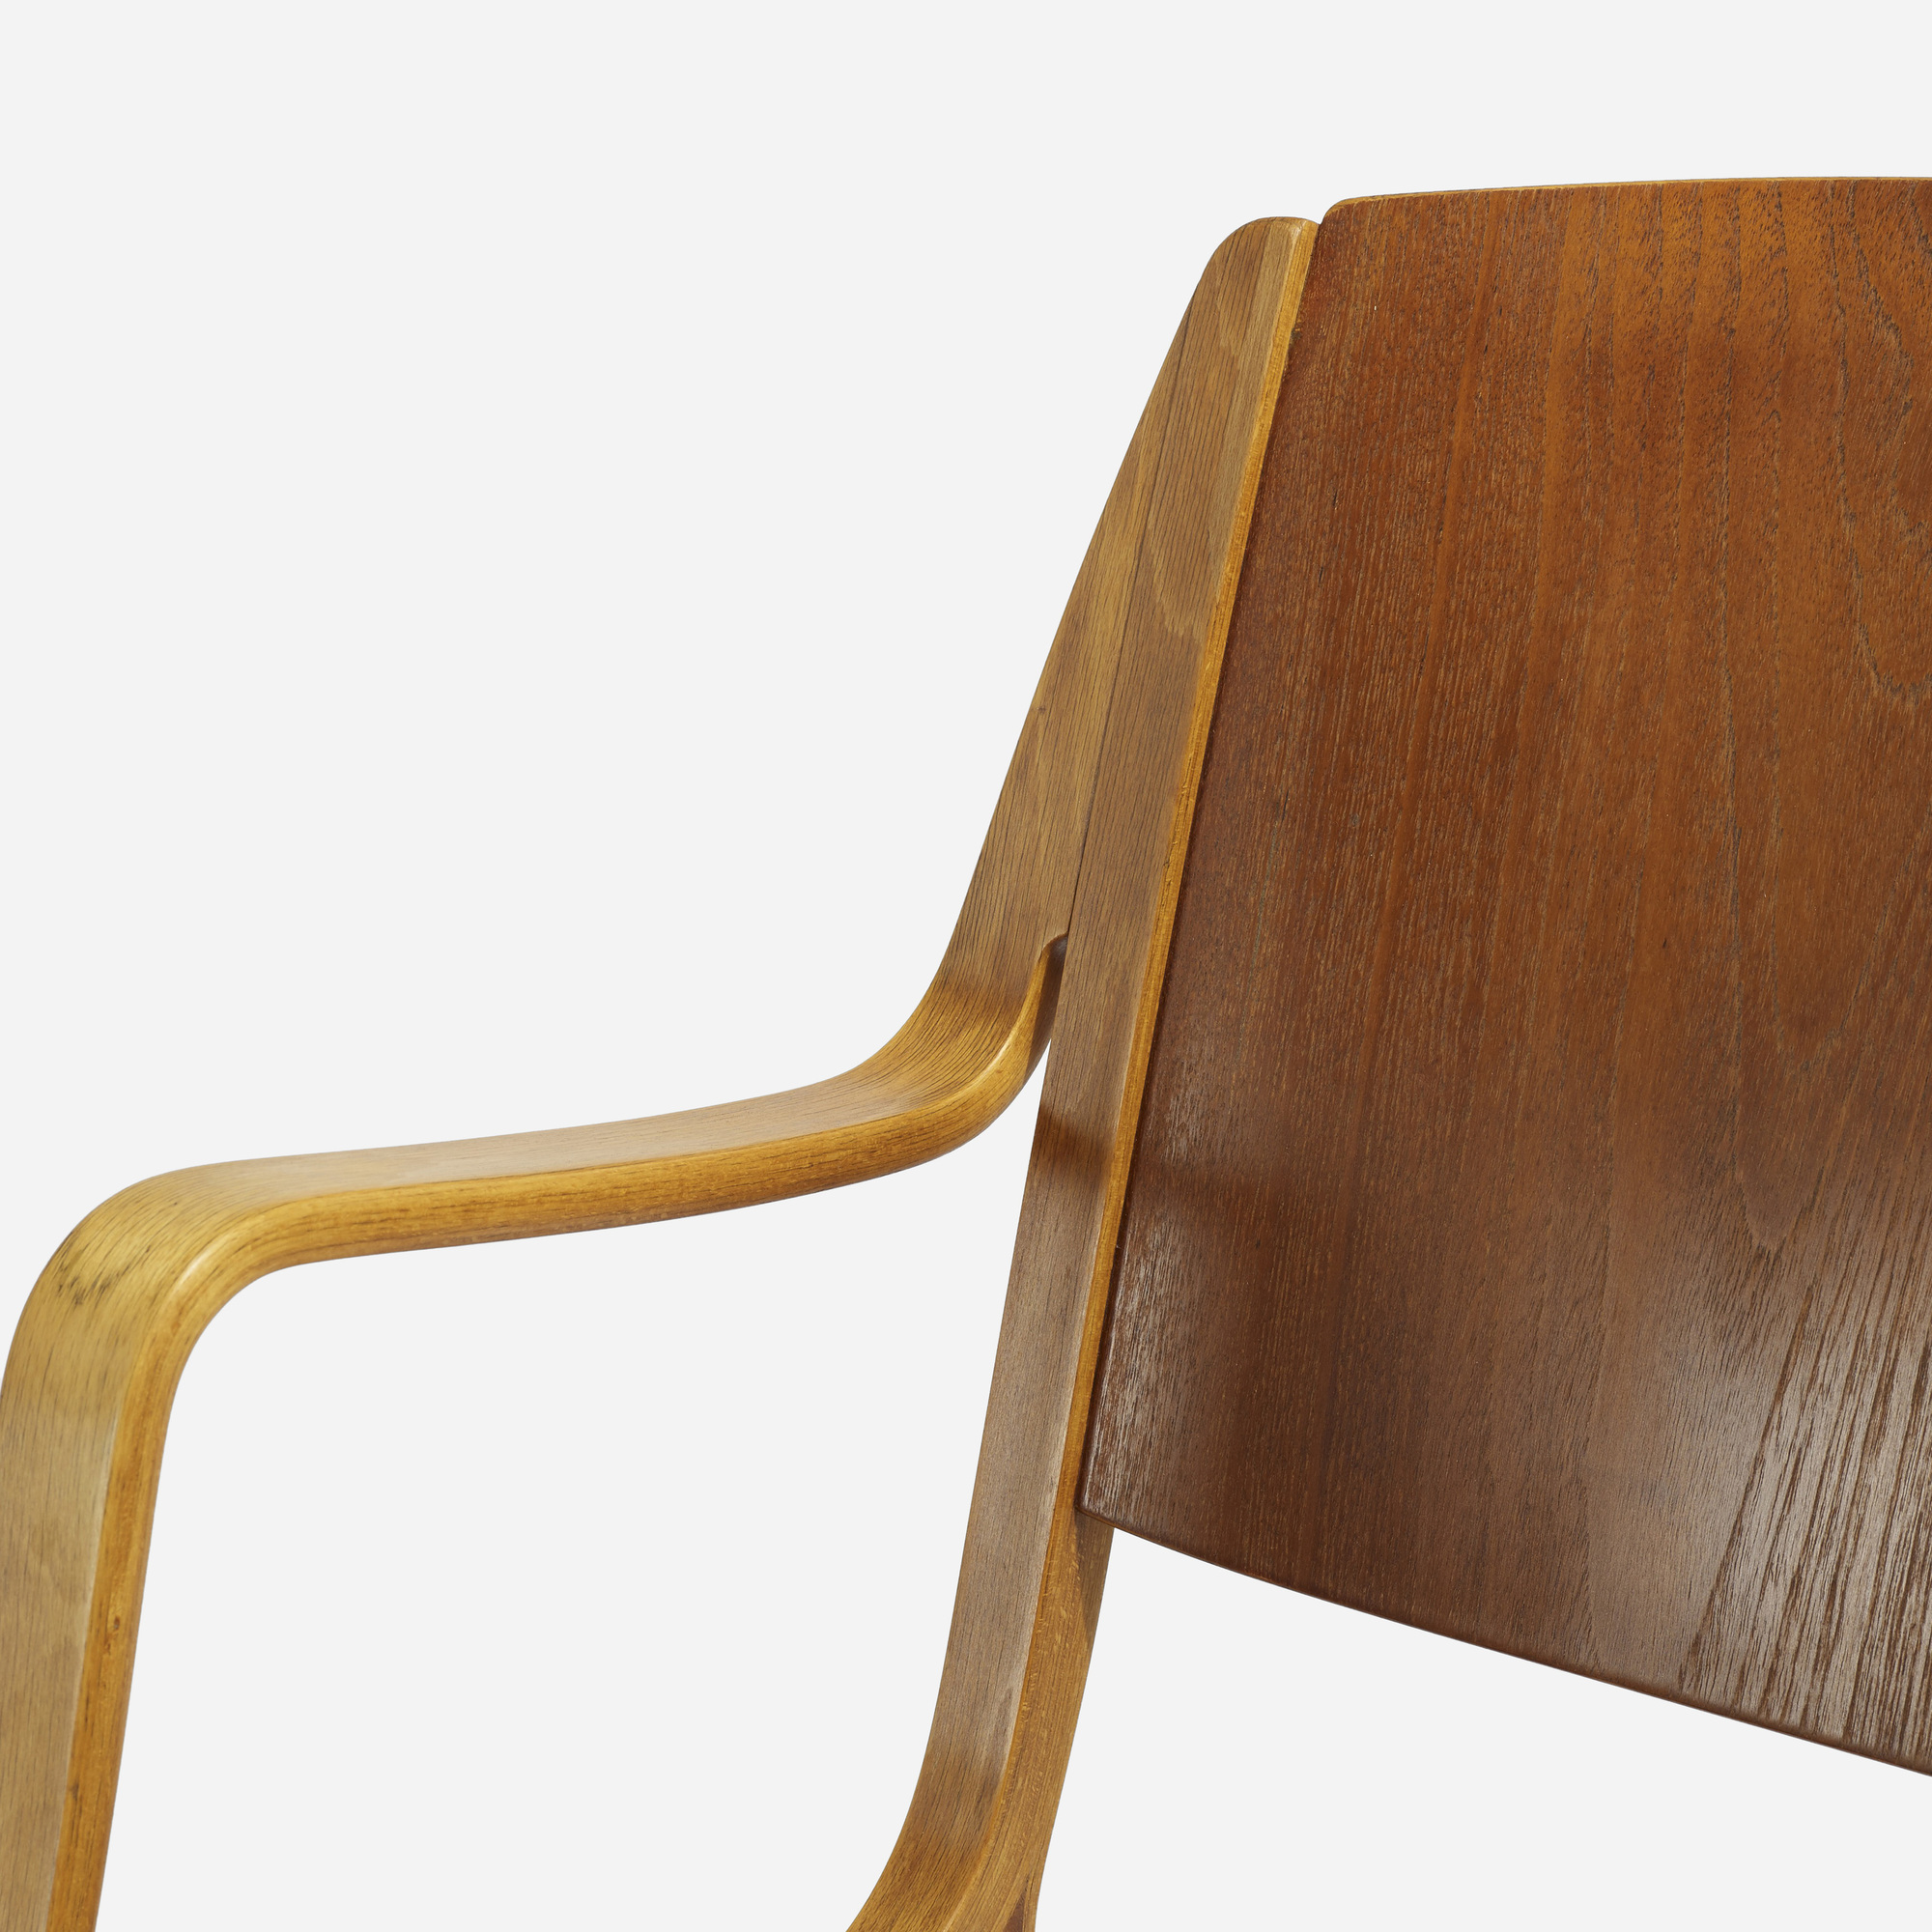 143: Peter Hvidt and Orla Mølgaard-Nielsen / Ax chairs, pair (2 of 3)